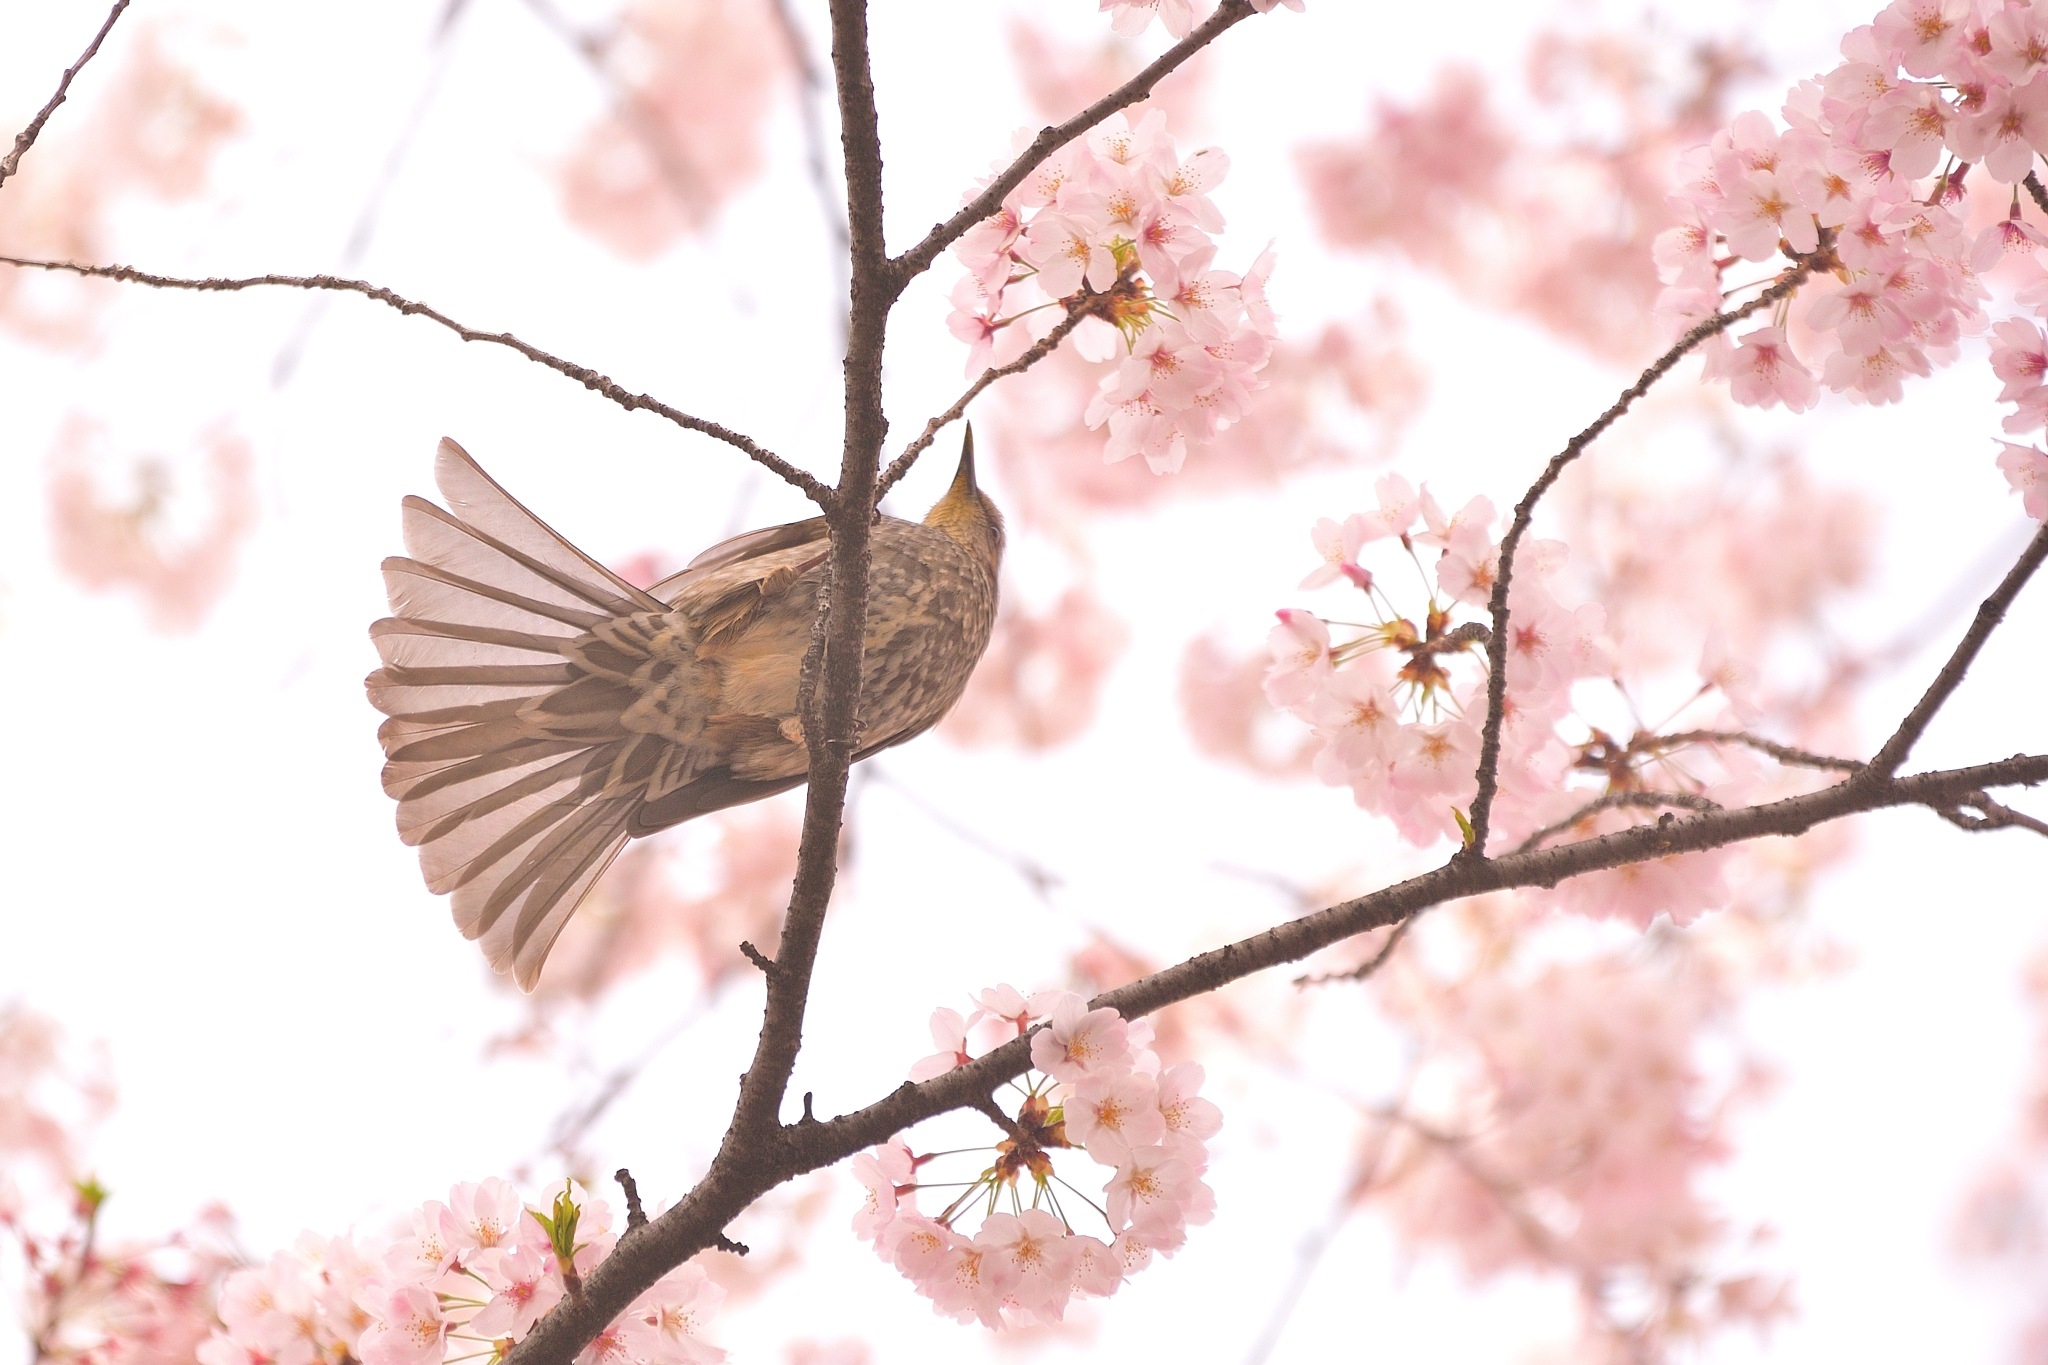 Sakura and the Bird by Y. Takei